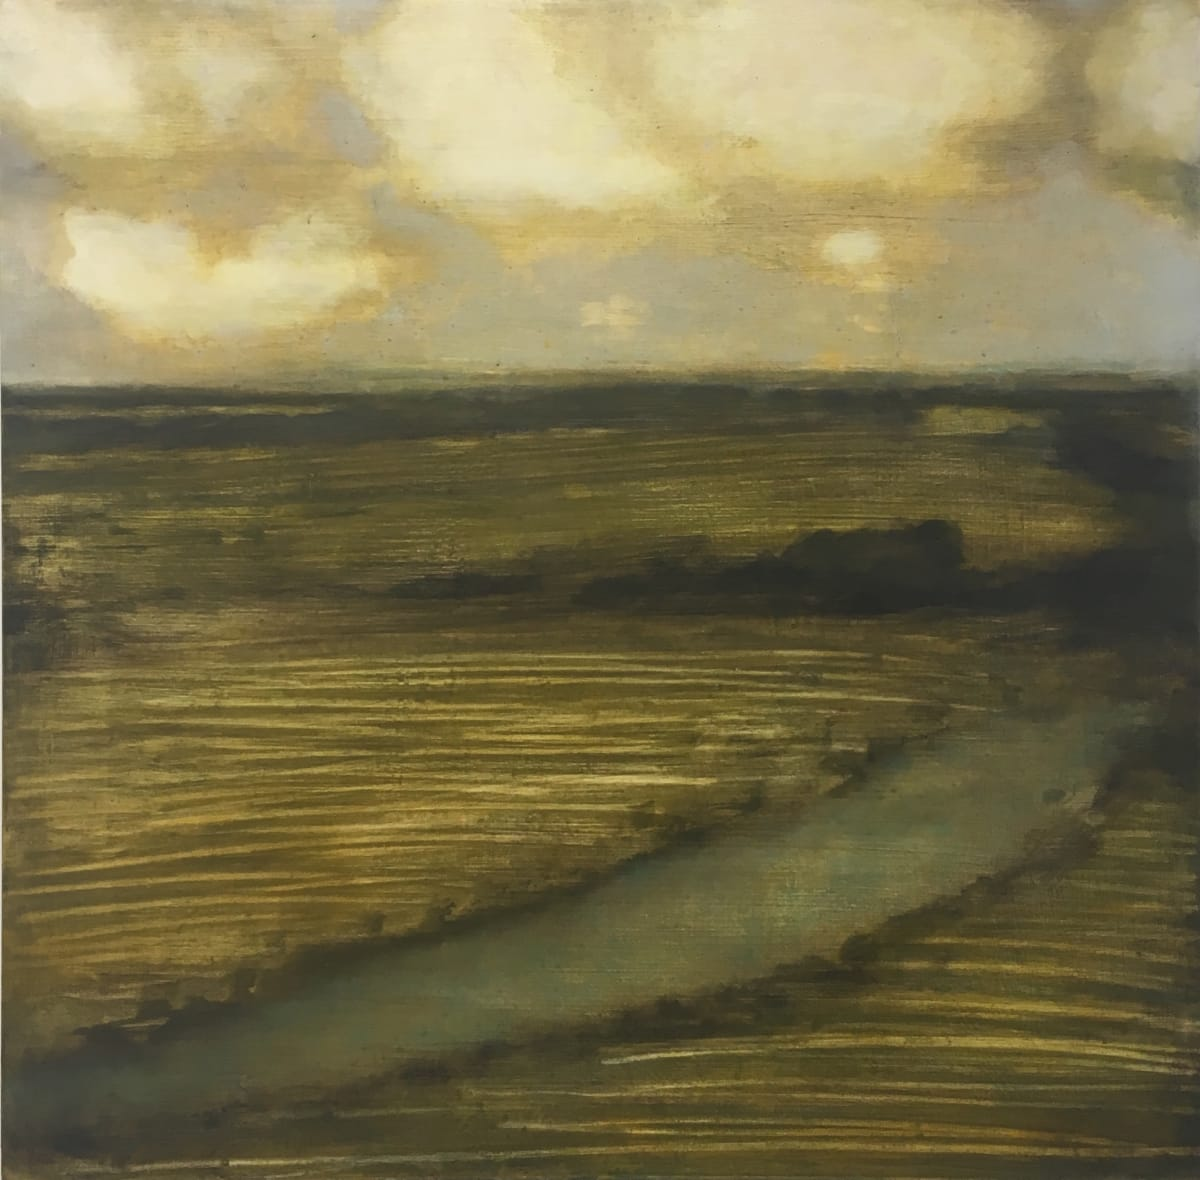 David Konigsberg, Field (with Creek), 2019